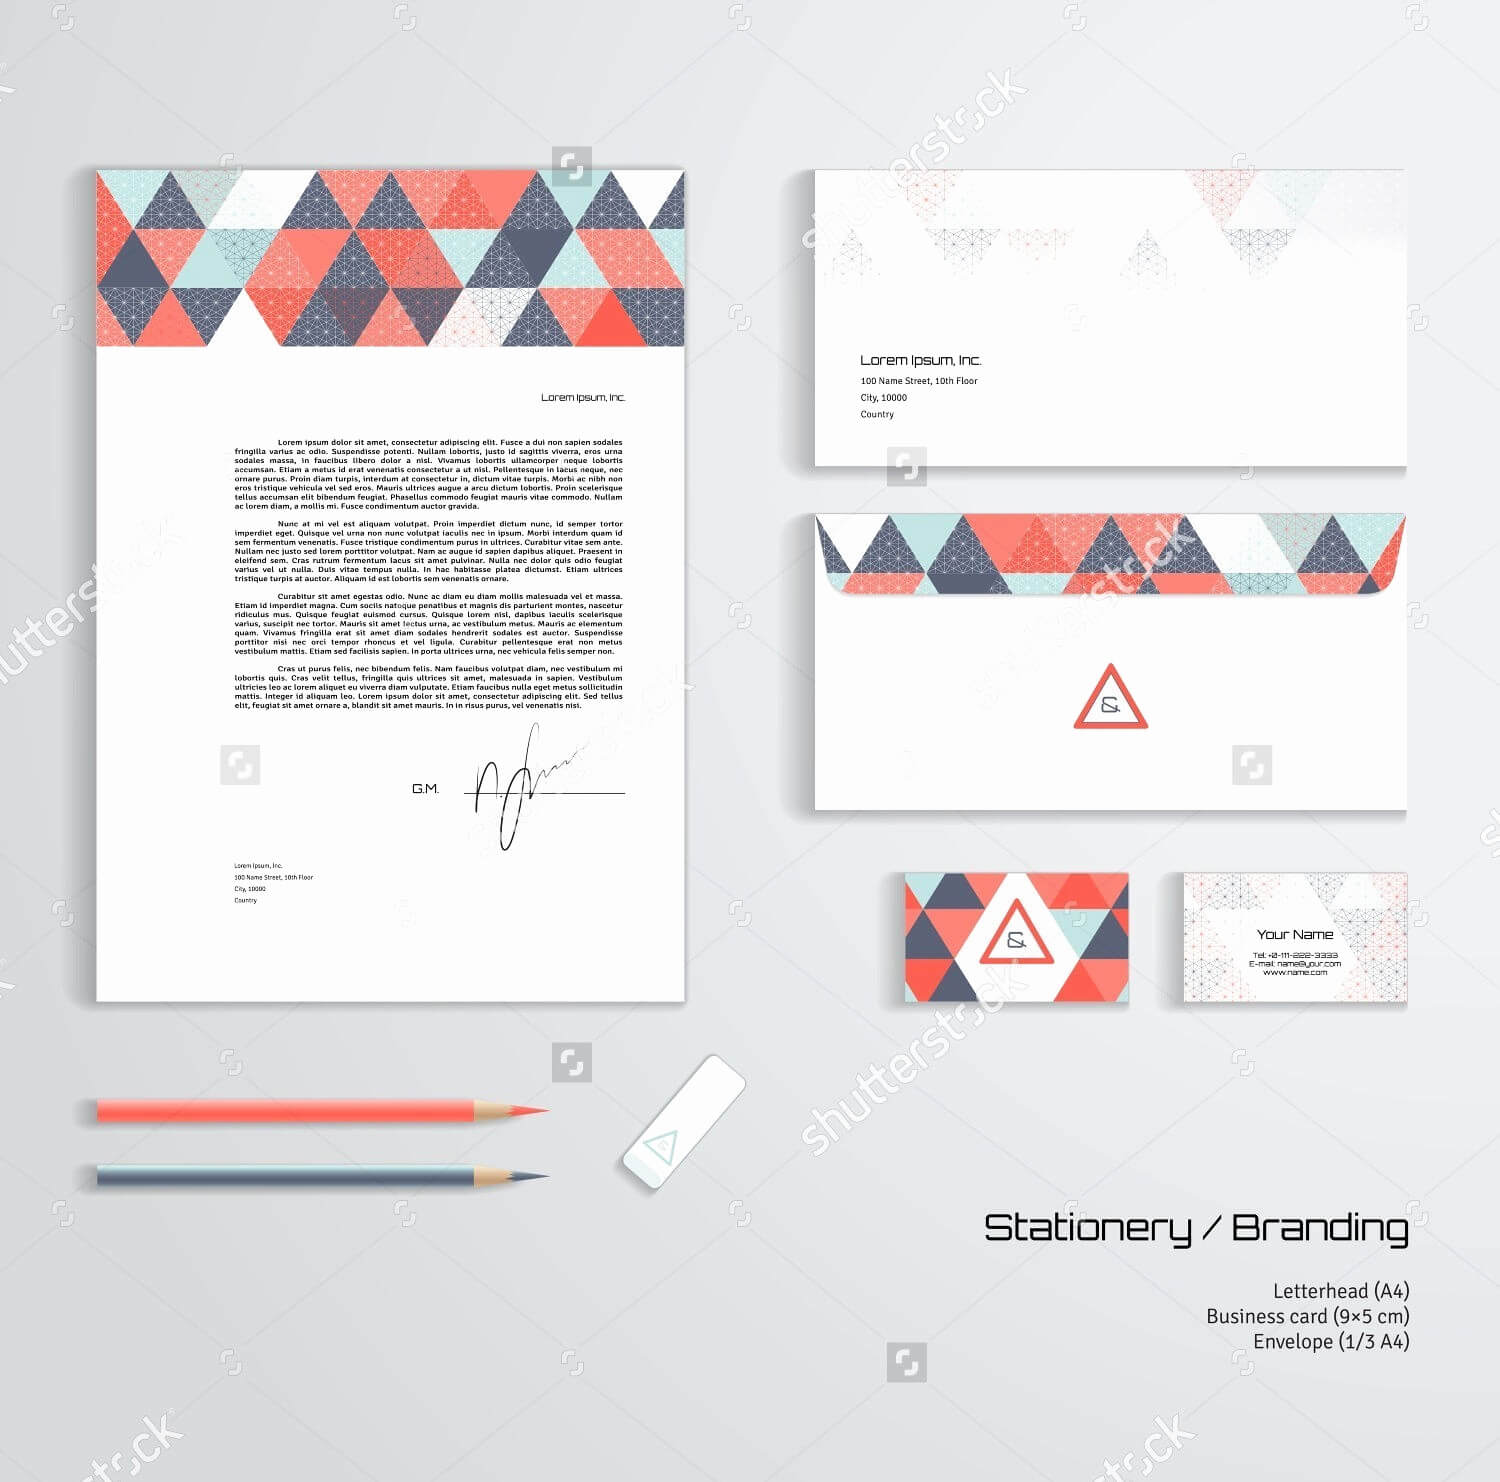 Business Card Template Open Office Free Printable Templates regarding Openoffice Business Card Template